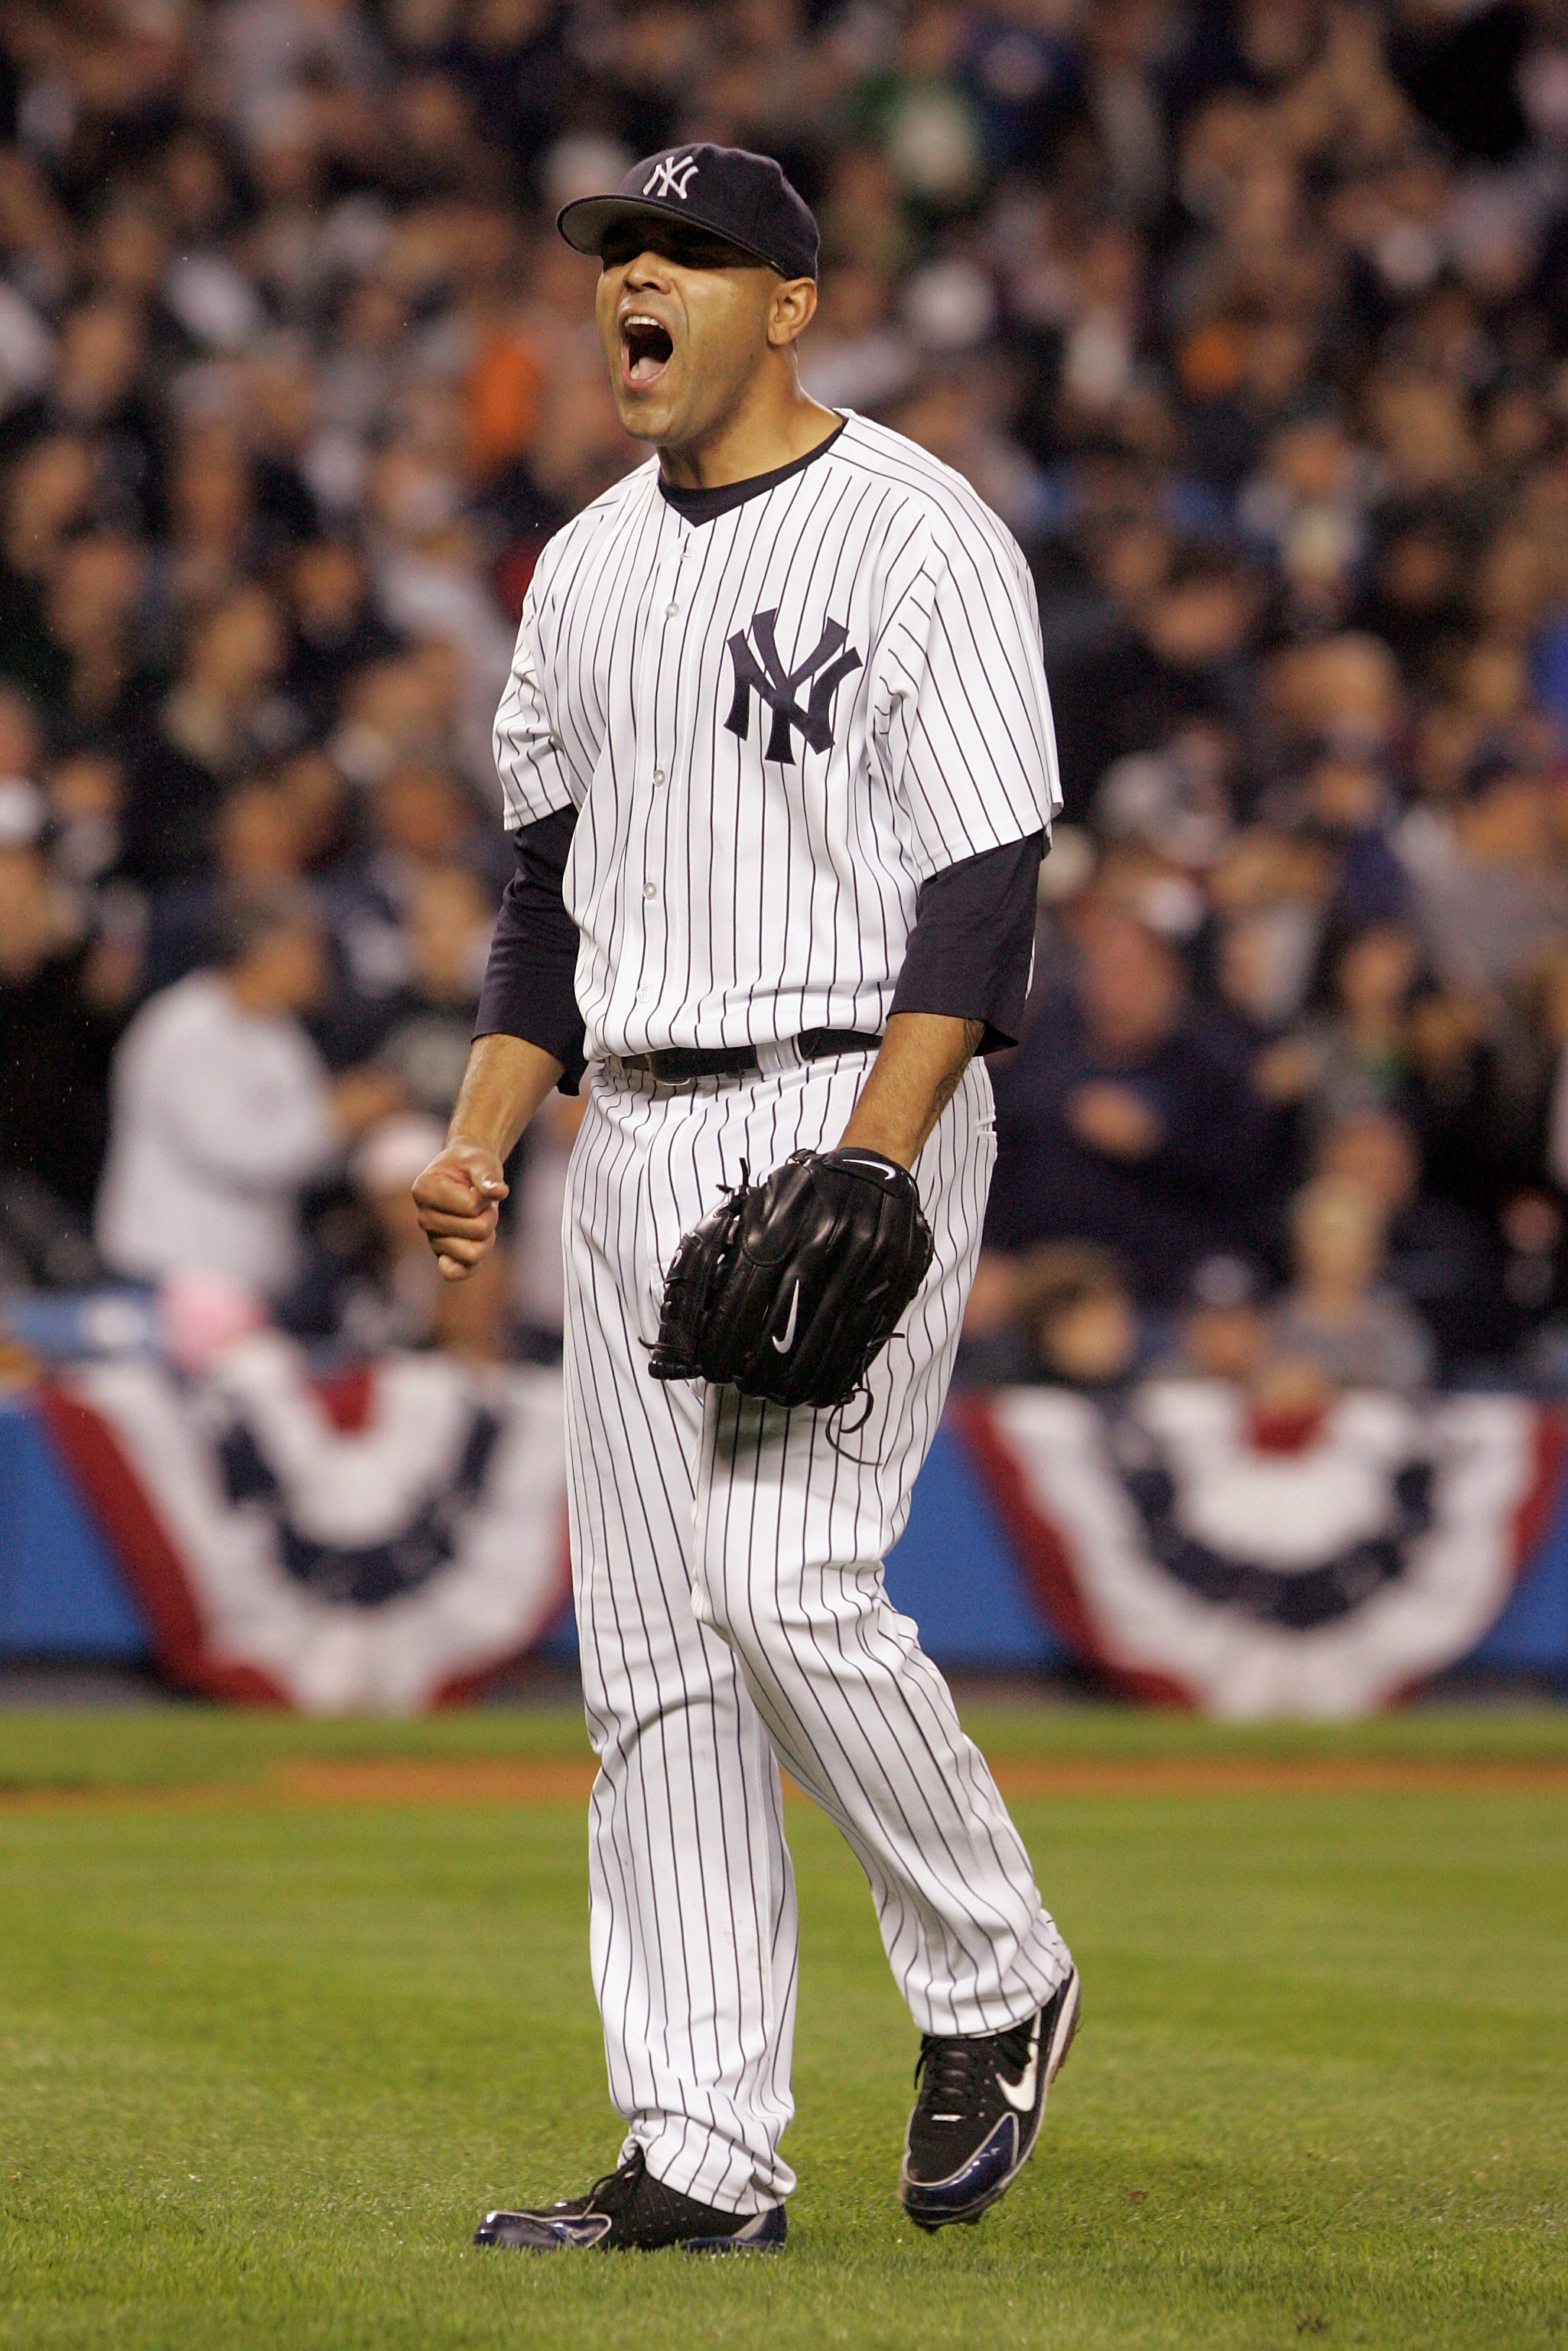 Shawn Chacon in the moment that defined his pinstripe legacy as he held the Angels to 2 runs in Game 4 of the ALDS.